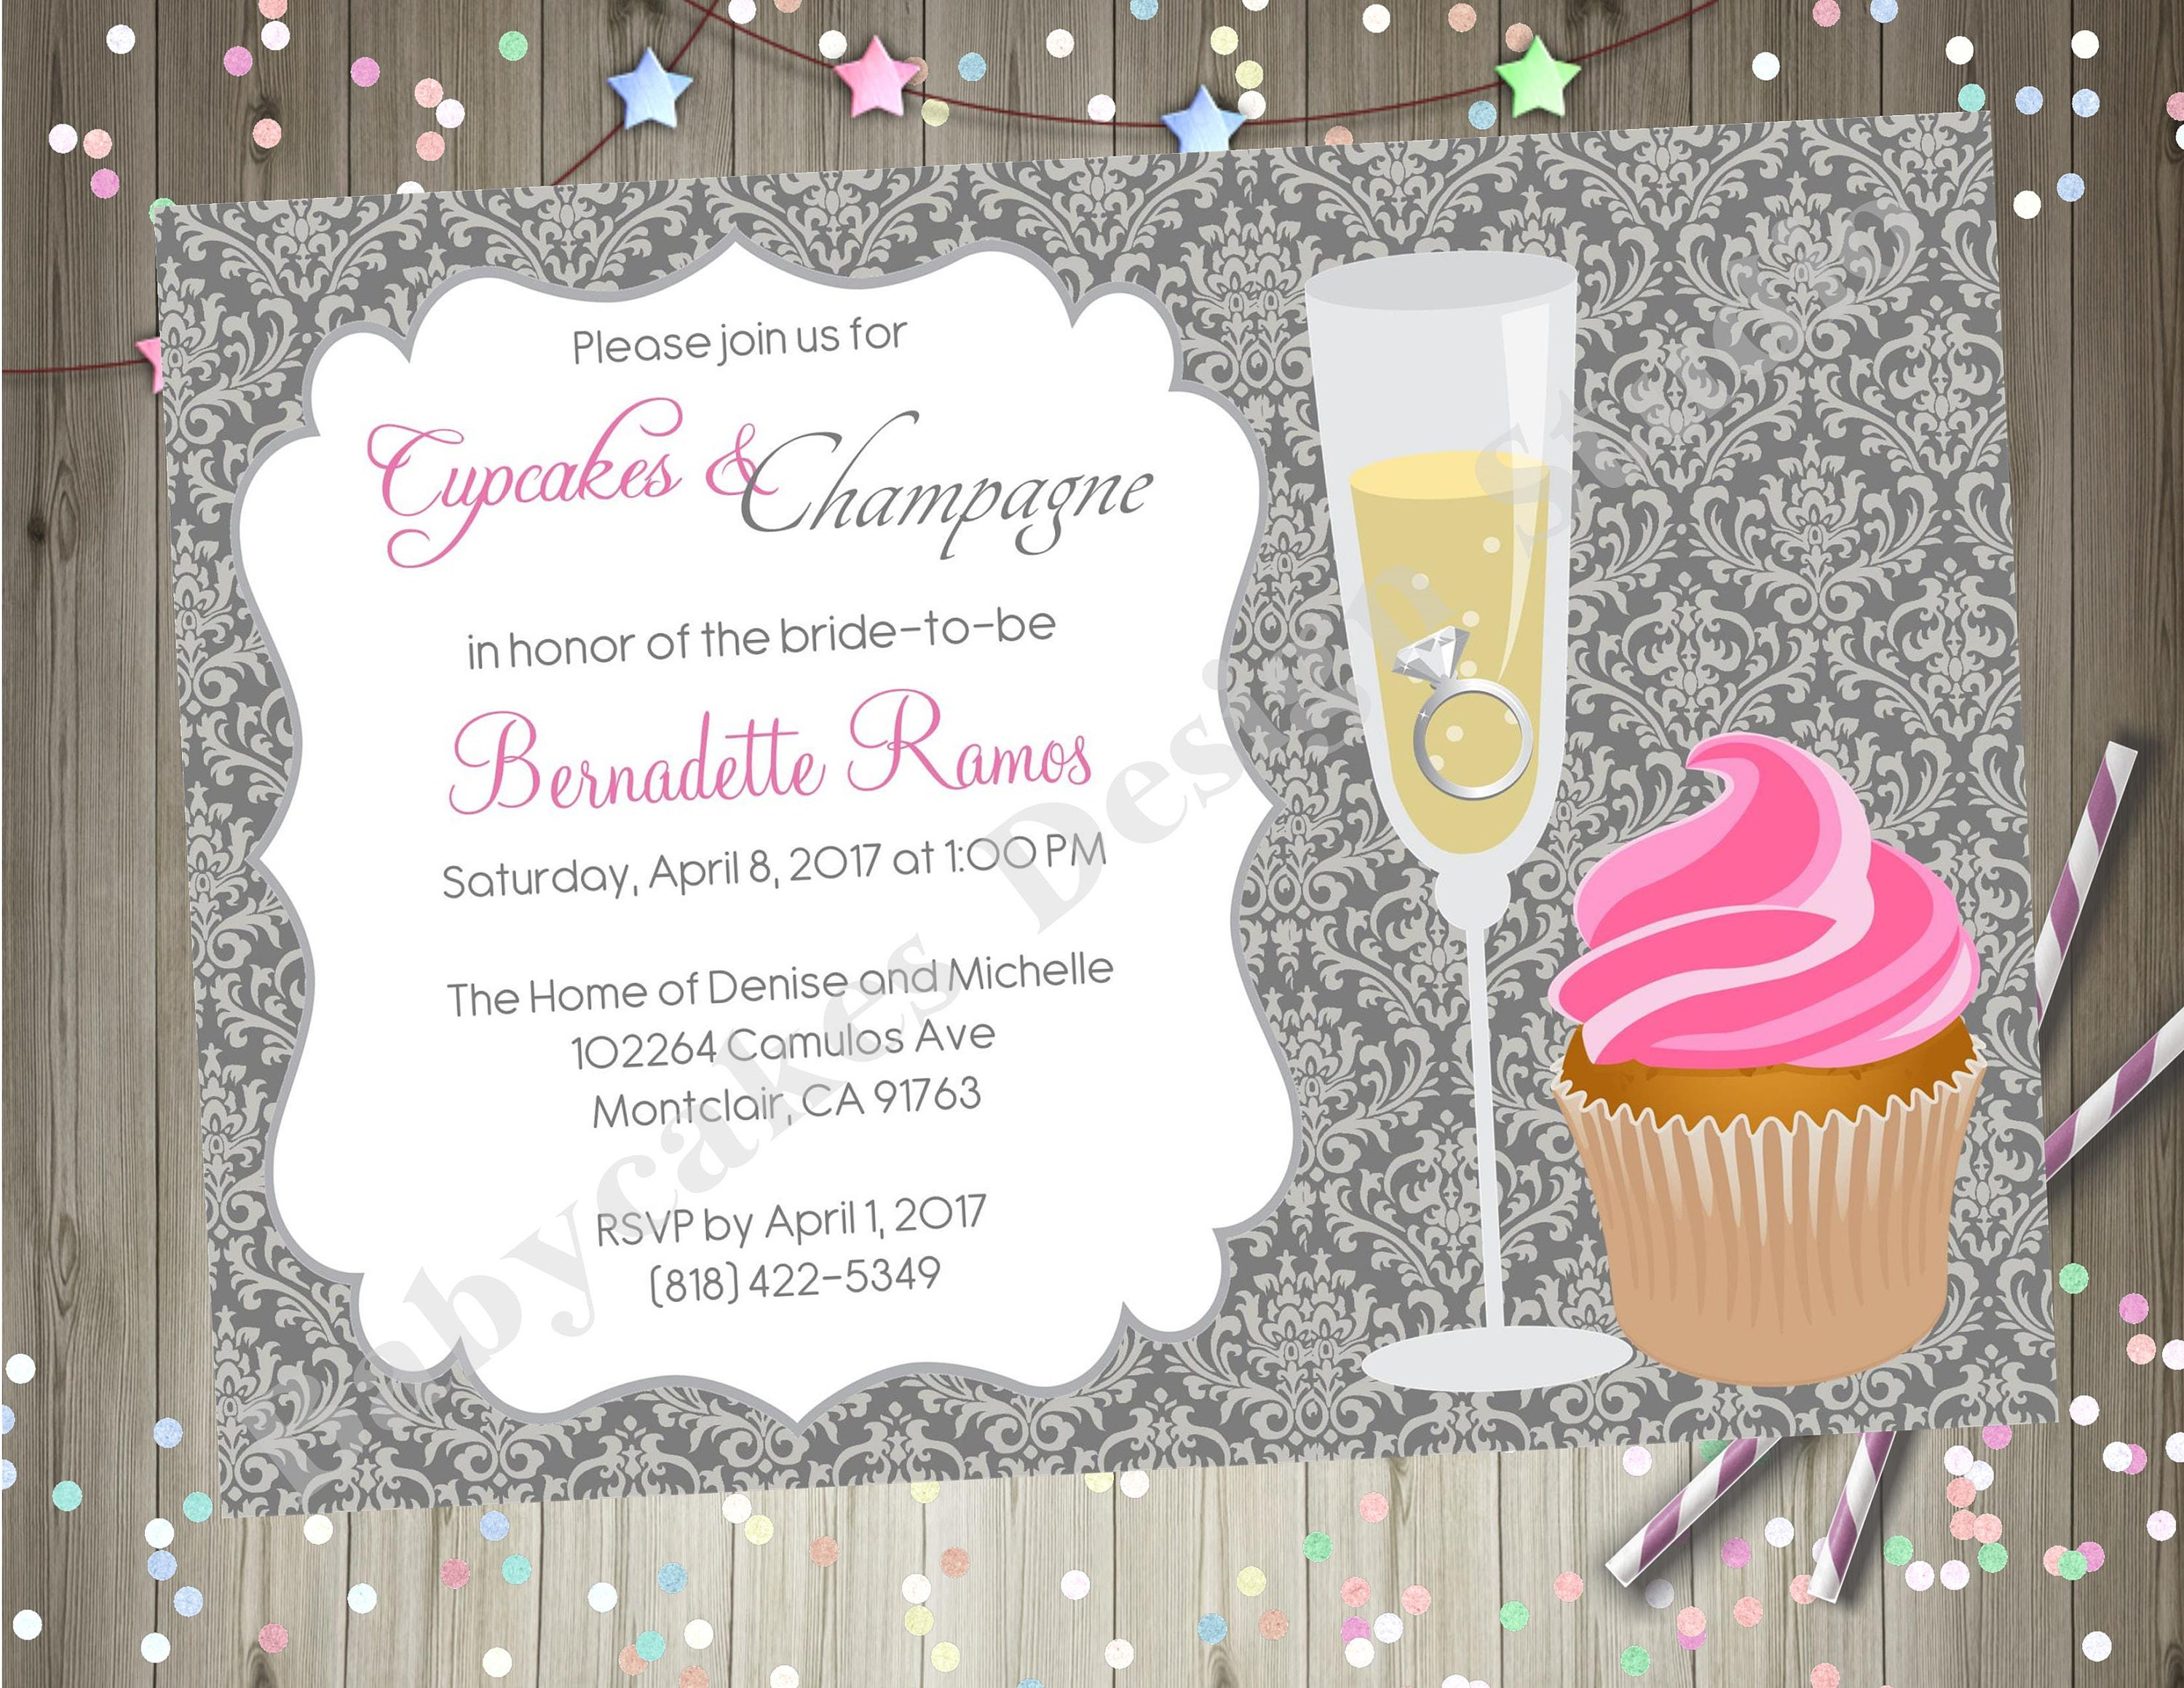 Cupcakes and Champagne Bridal Shower Invitation Invite Bubbly | Etsy